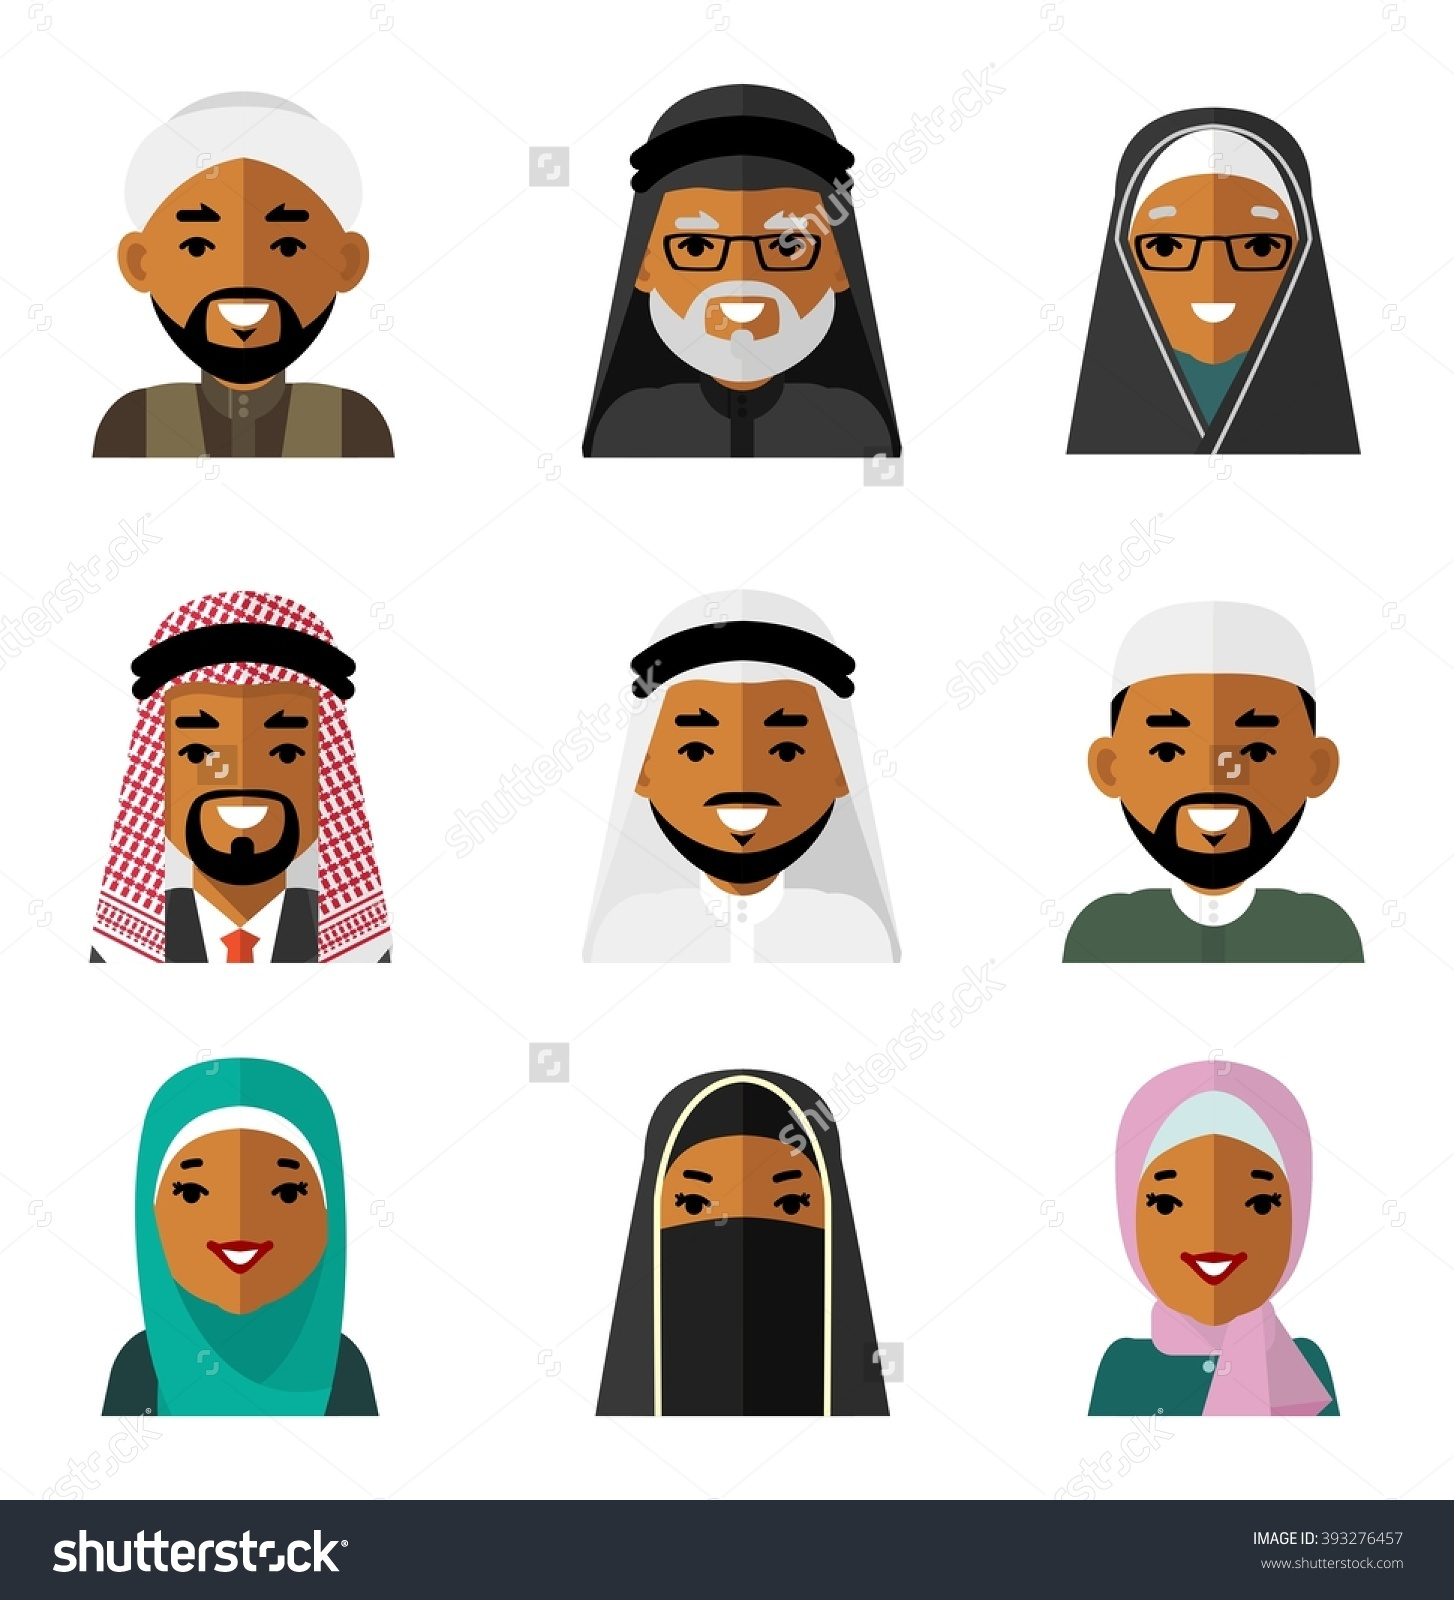 Muslim Arab People Characters Avatars Icons Stock Vector 393276457 ... svg library download